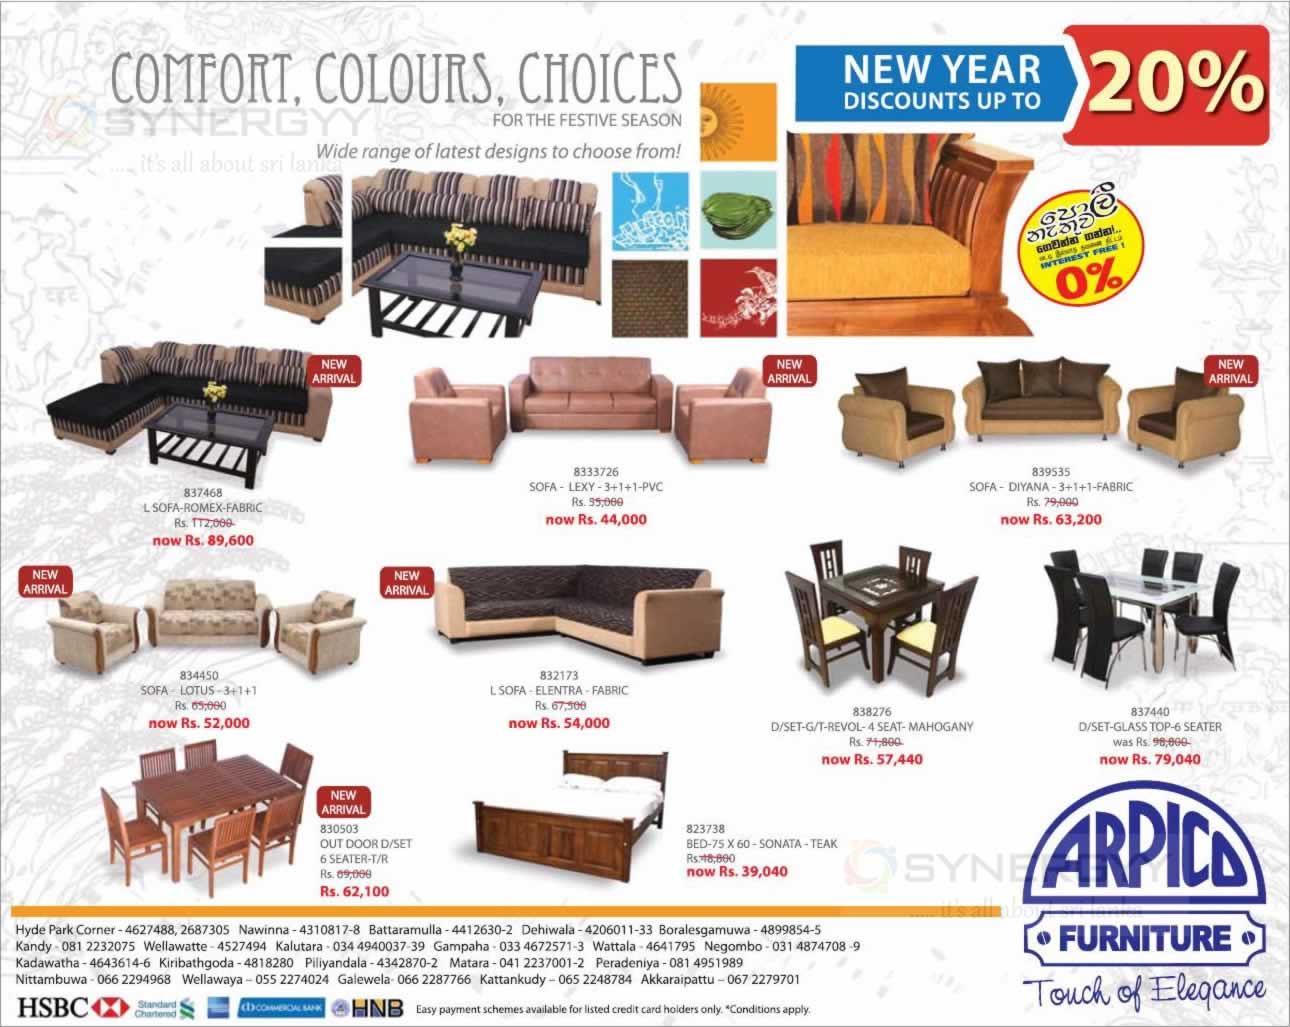 arpico furniture new year sales discounts upto 20 till april 2014 synergyy